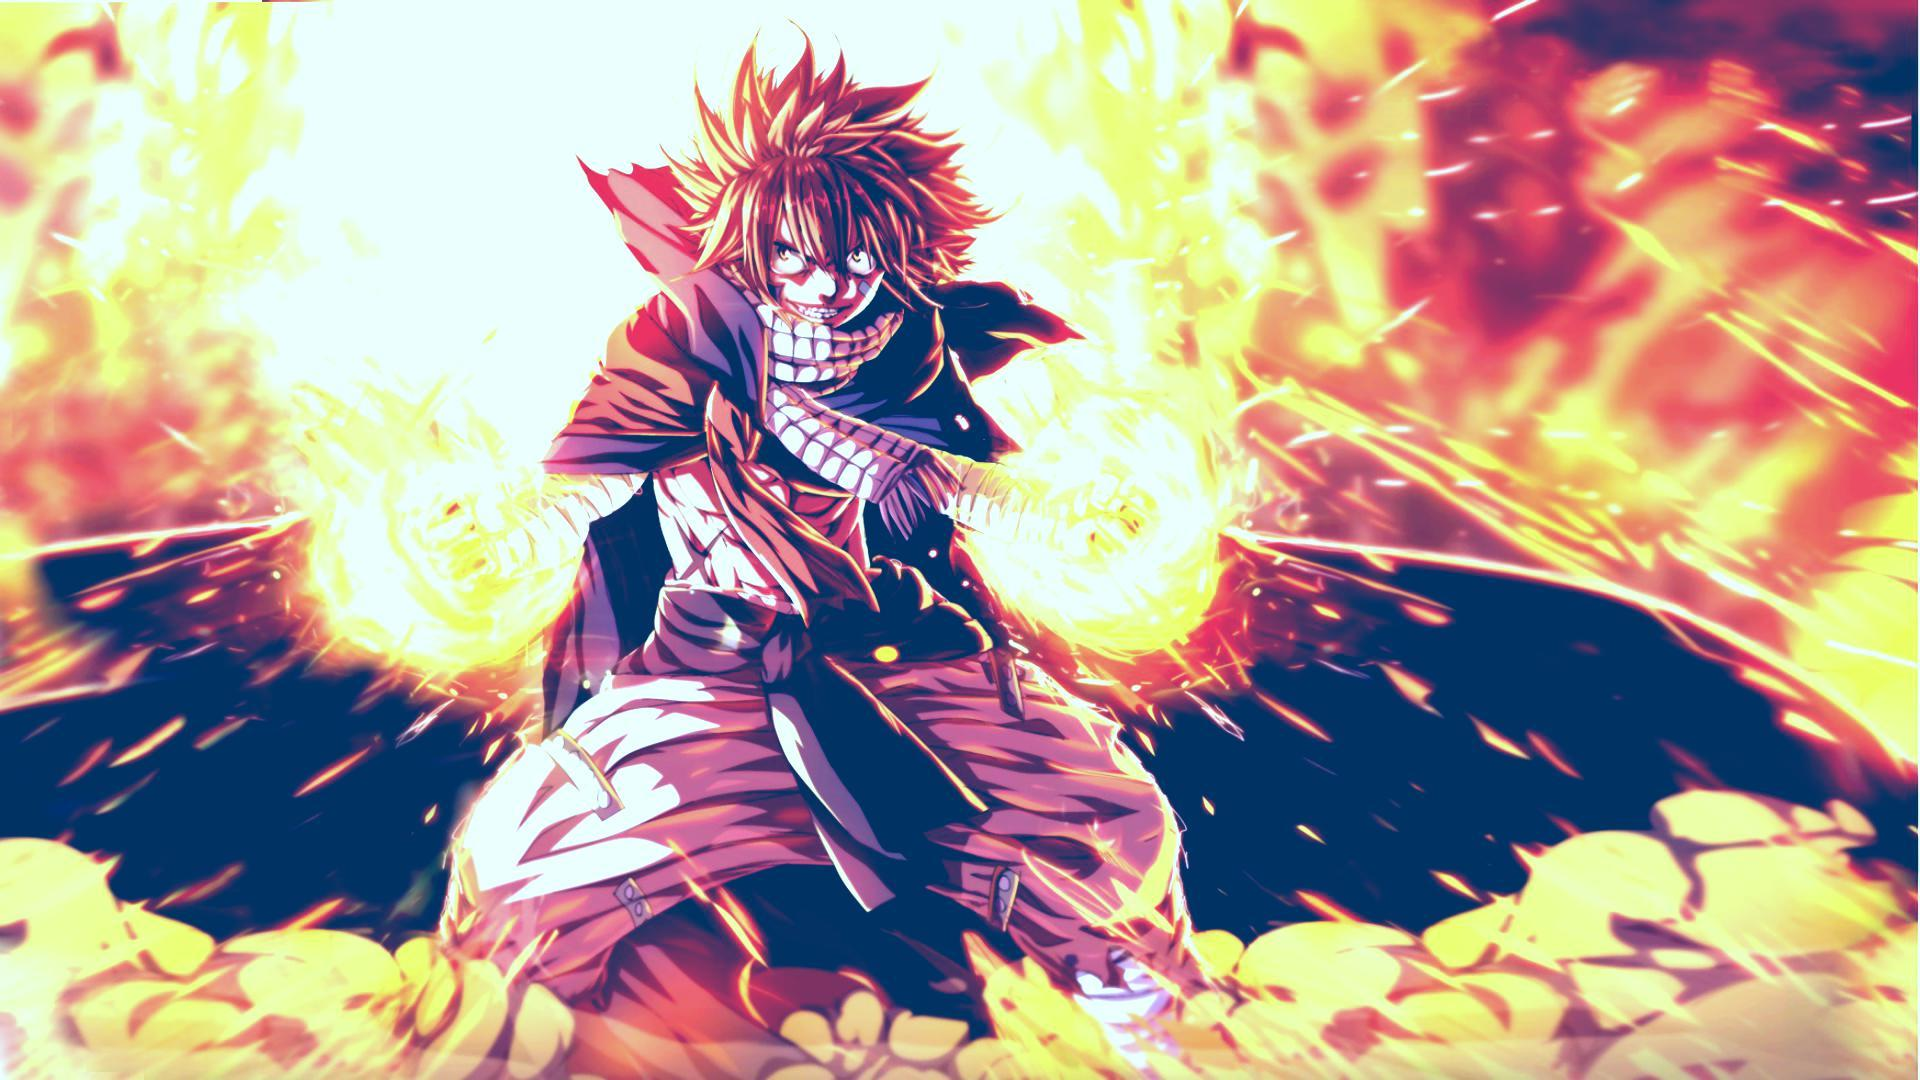 Fairy Tail Gajeel Wallpapers - Wallpaper Cave